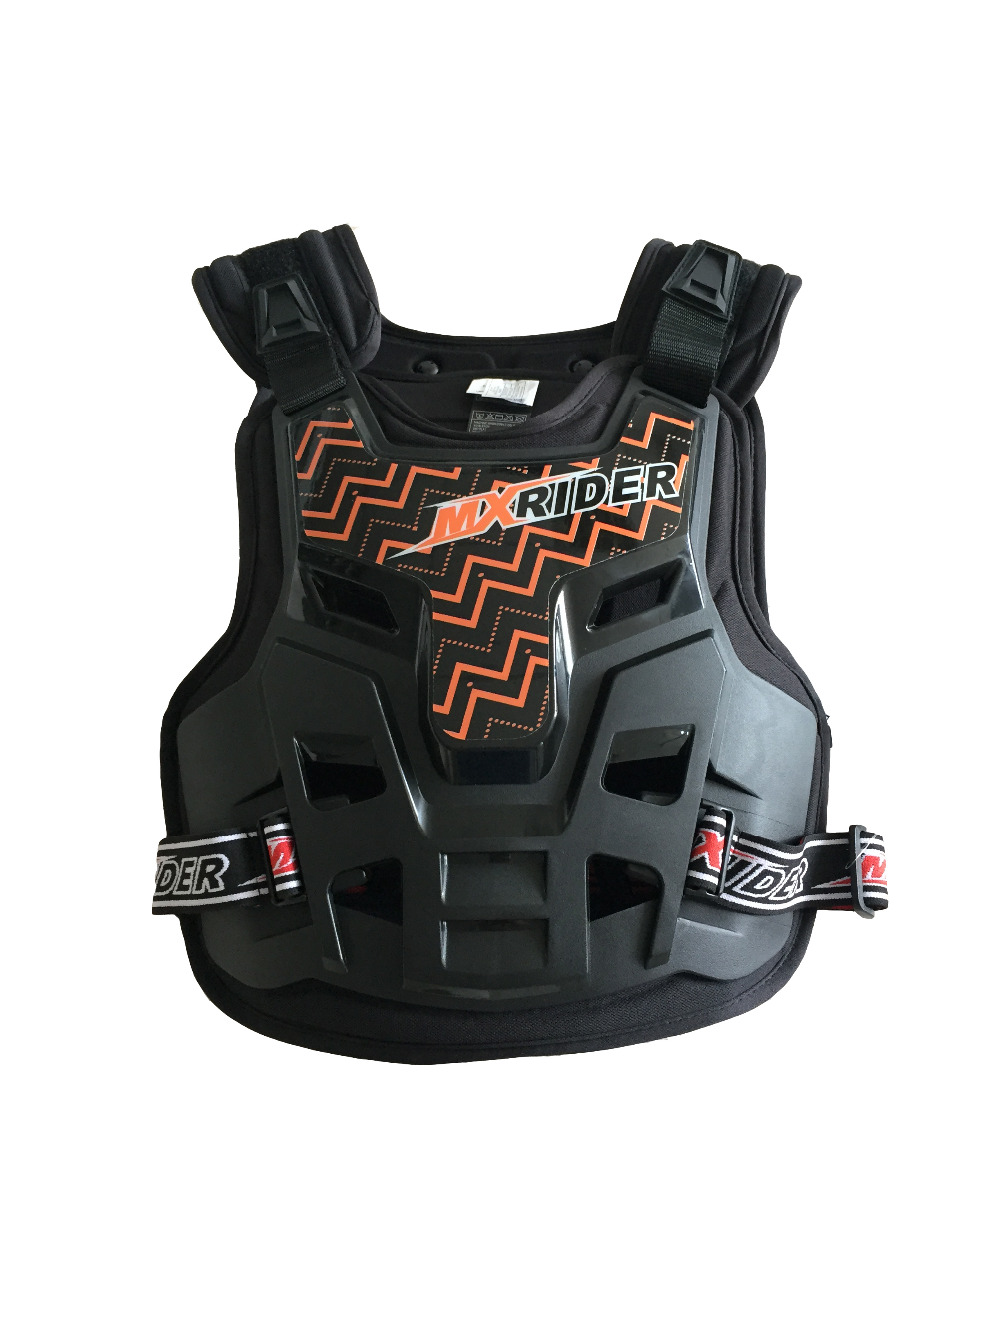 Motorcycles Motocross Chest Back Protector Armour Vest Racing Protective Body-Guard MX armor ATV Guards Race armor guard scoyco motorcycle motocross chest back protector armour vest racing protective body guard mx jacket armor atv guards race moto